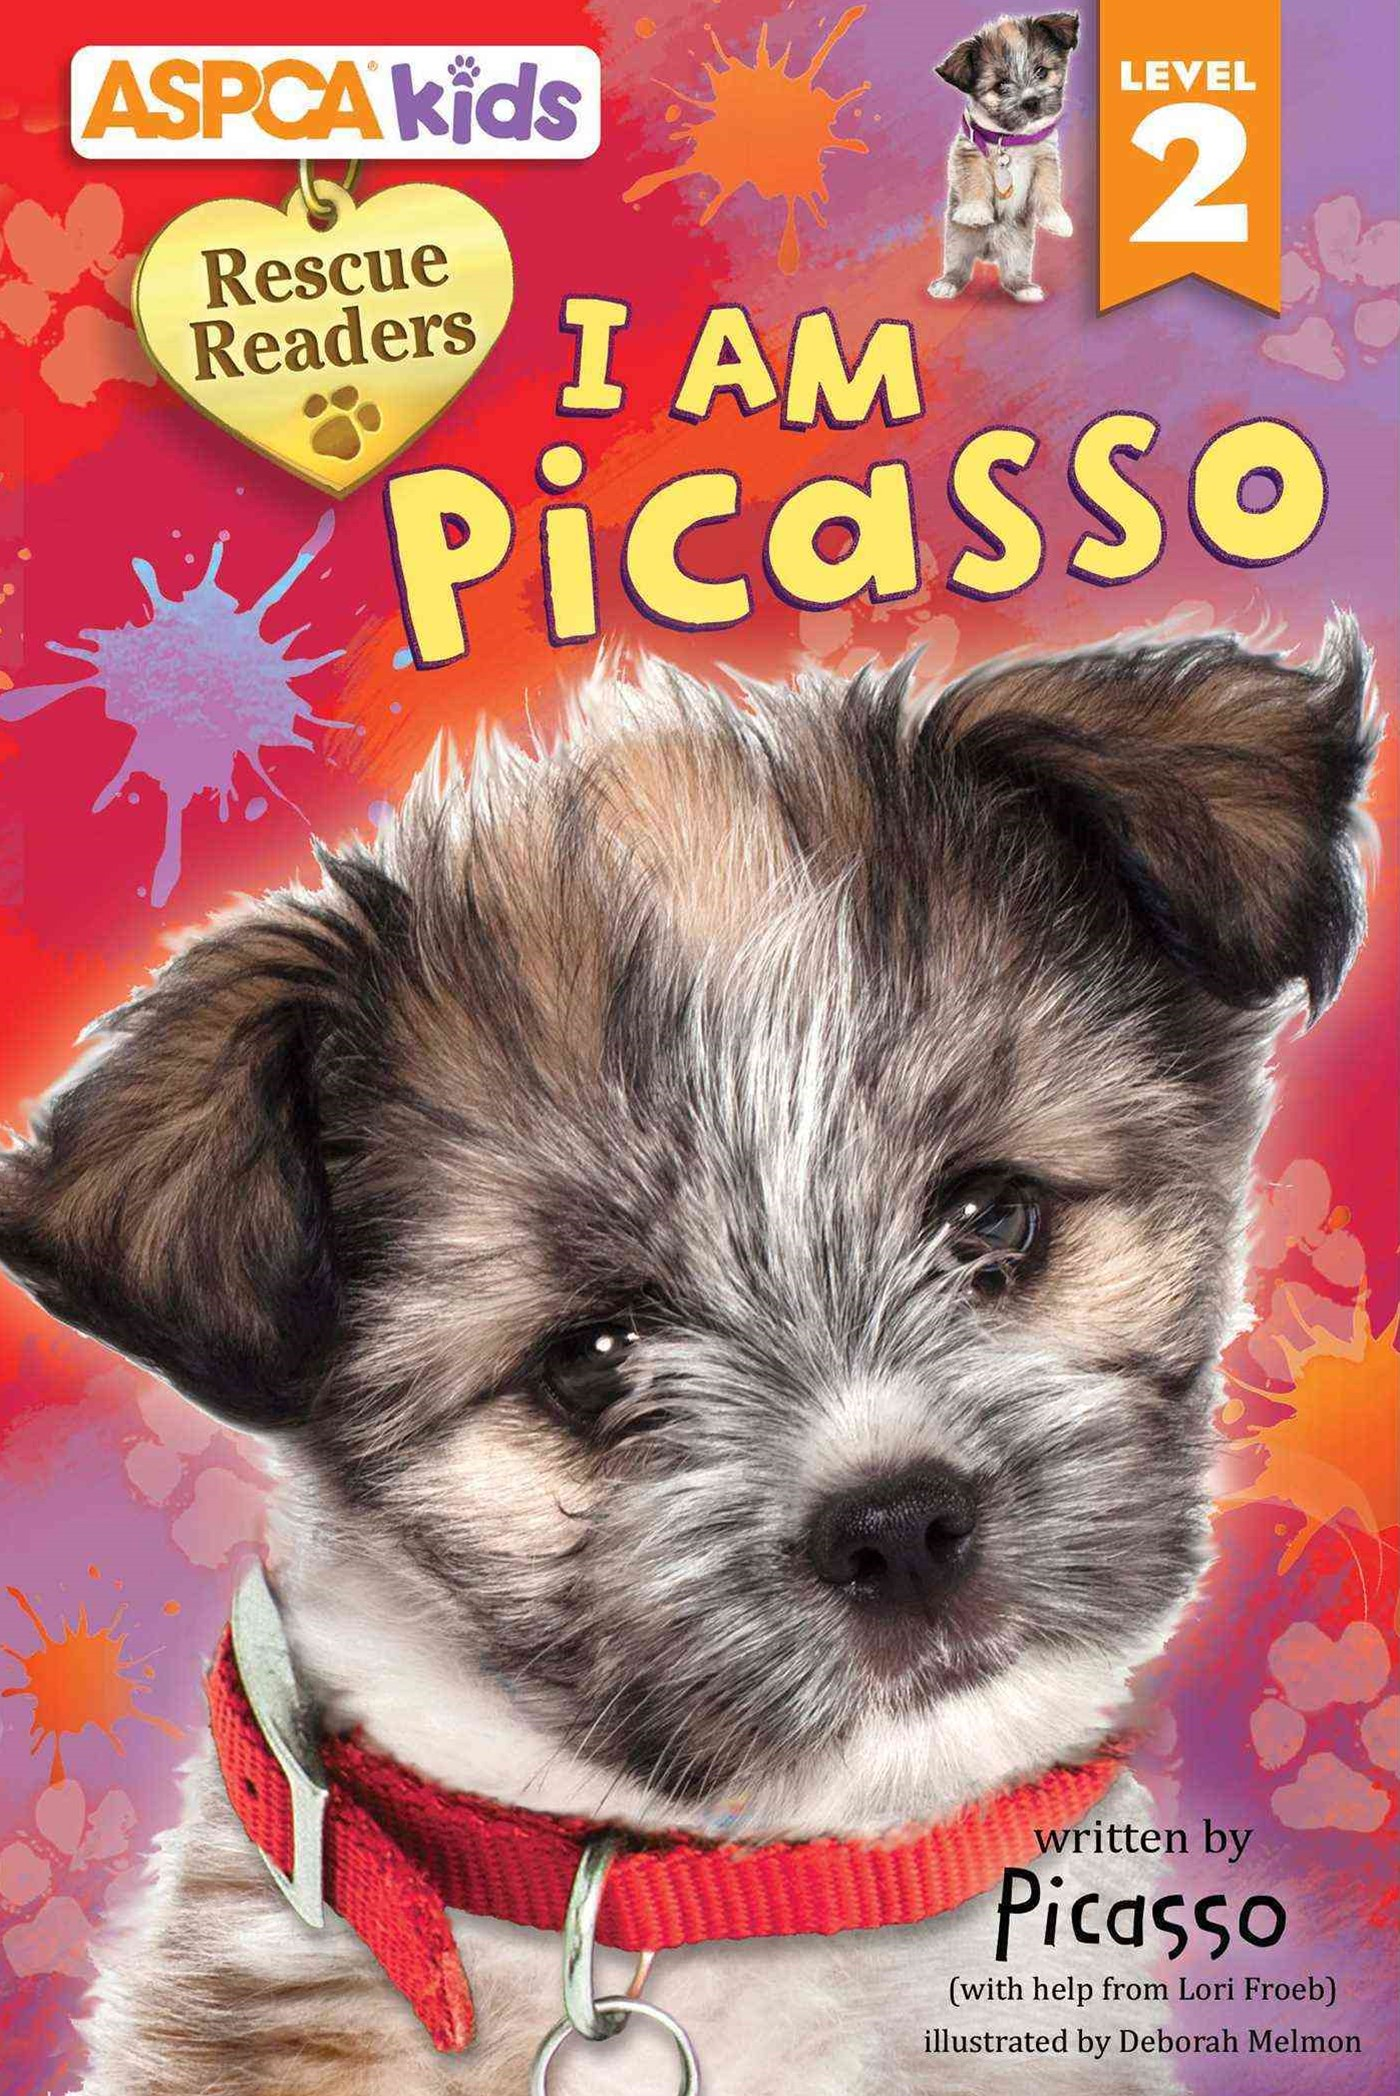 ASPCA Rescue Readers - I Am Picasso!